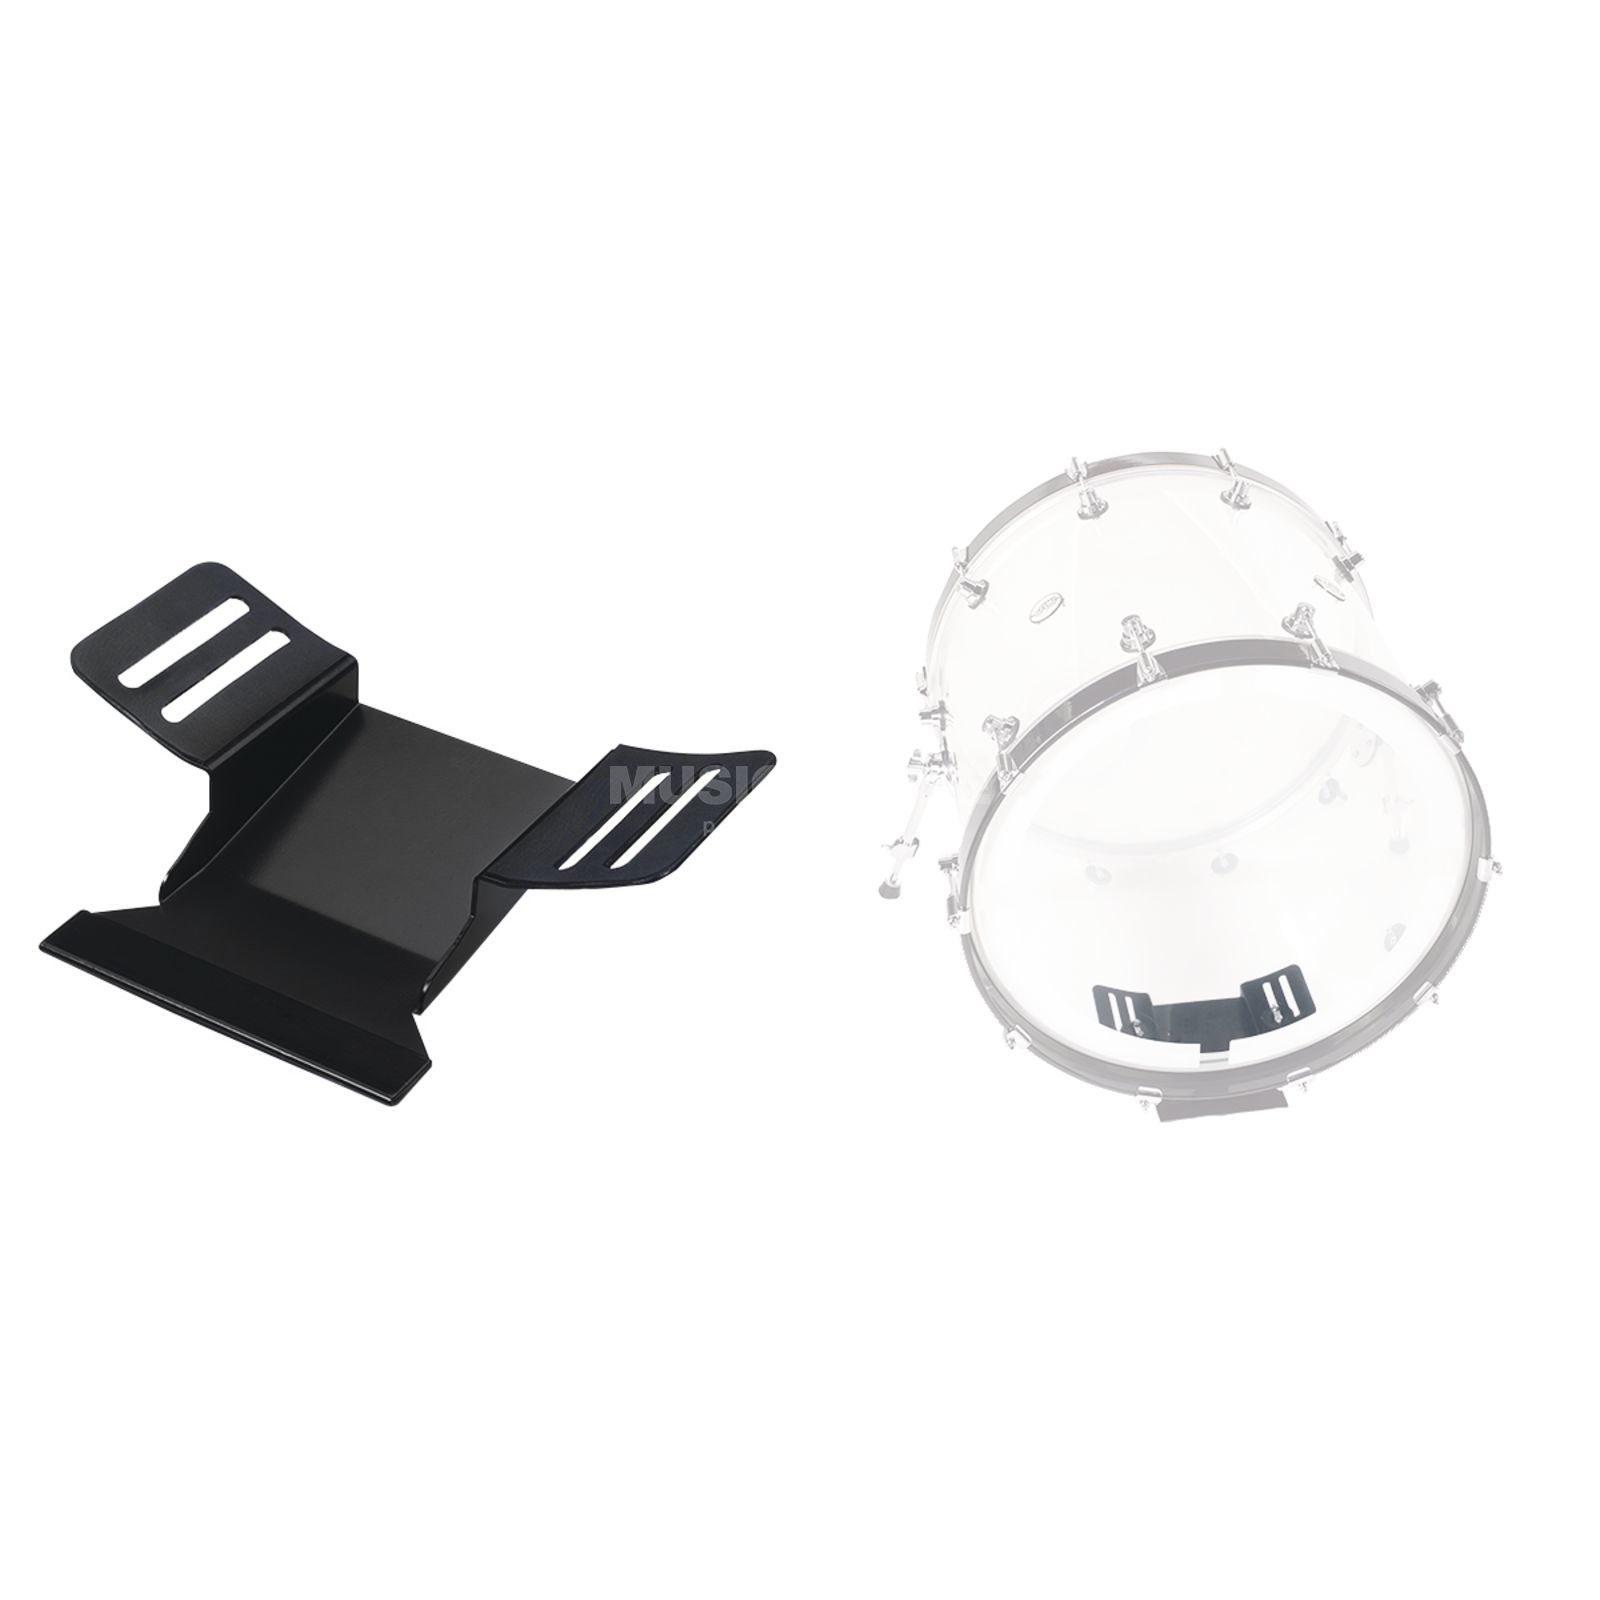 "Bass Plate Bass Pedal Docking Plate for 22"" Imagen del producto"